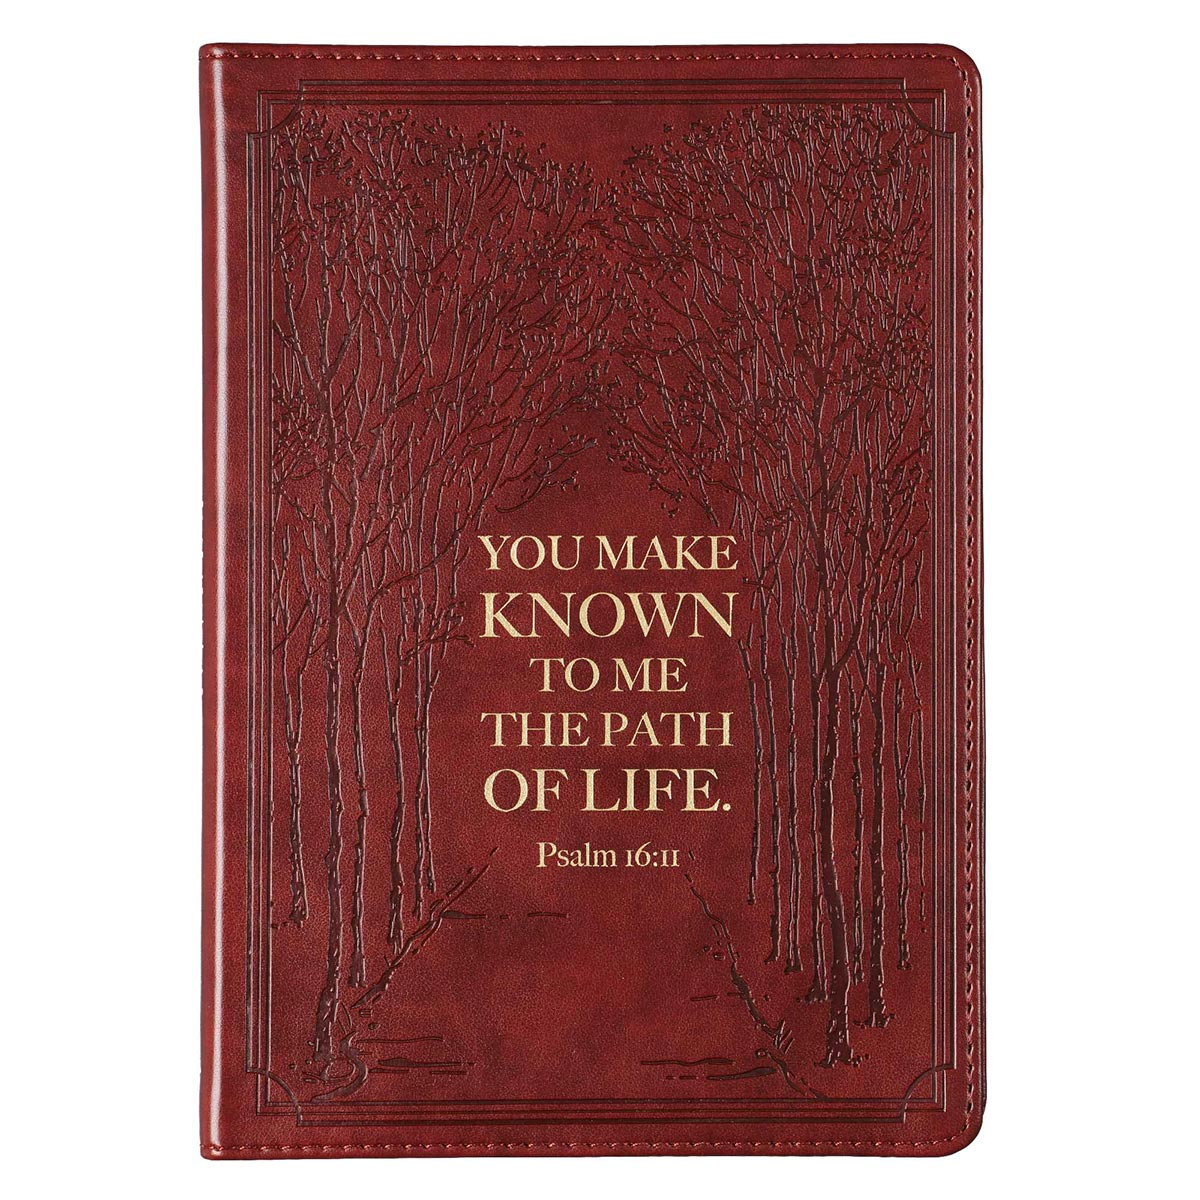 The Path of Life  Slimline Faux Leather Journal in Brown - Psalm 16:11